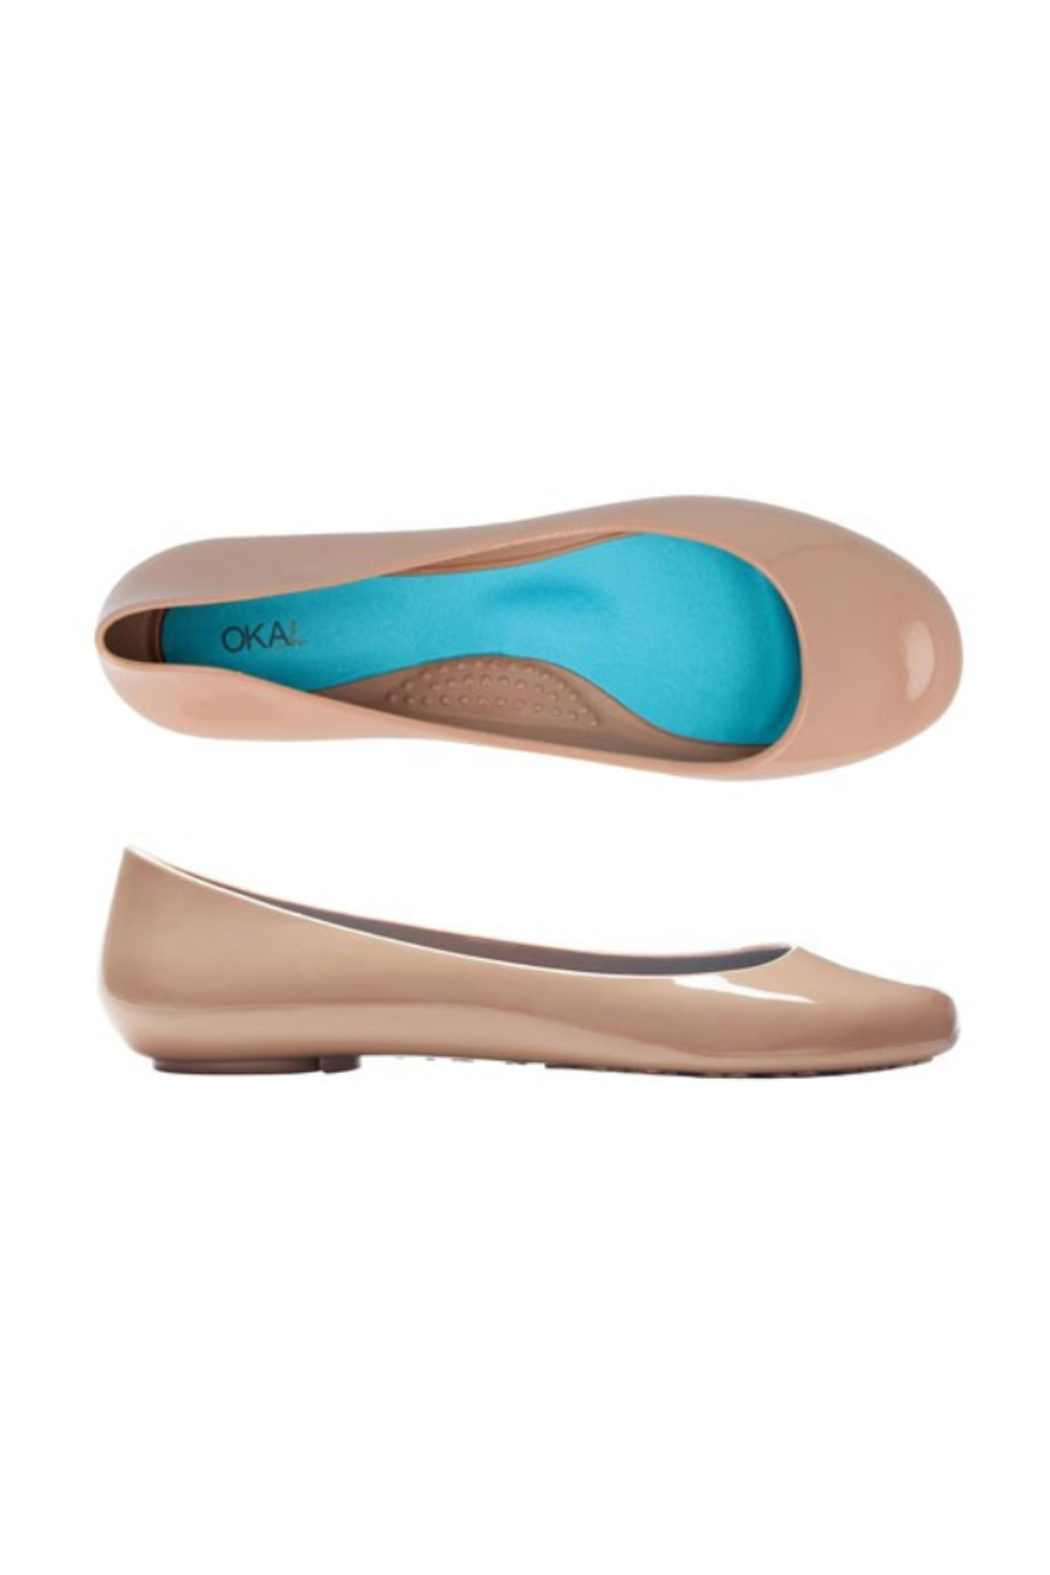 The Birds Nest TAYLOR BALLET FLATS- BLUSH SZ 8 - Main Image